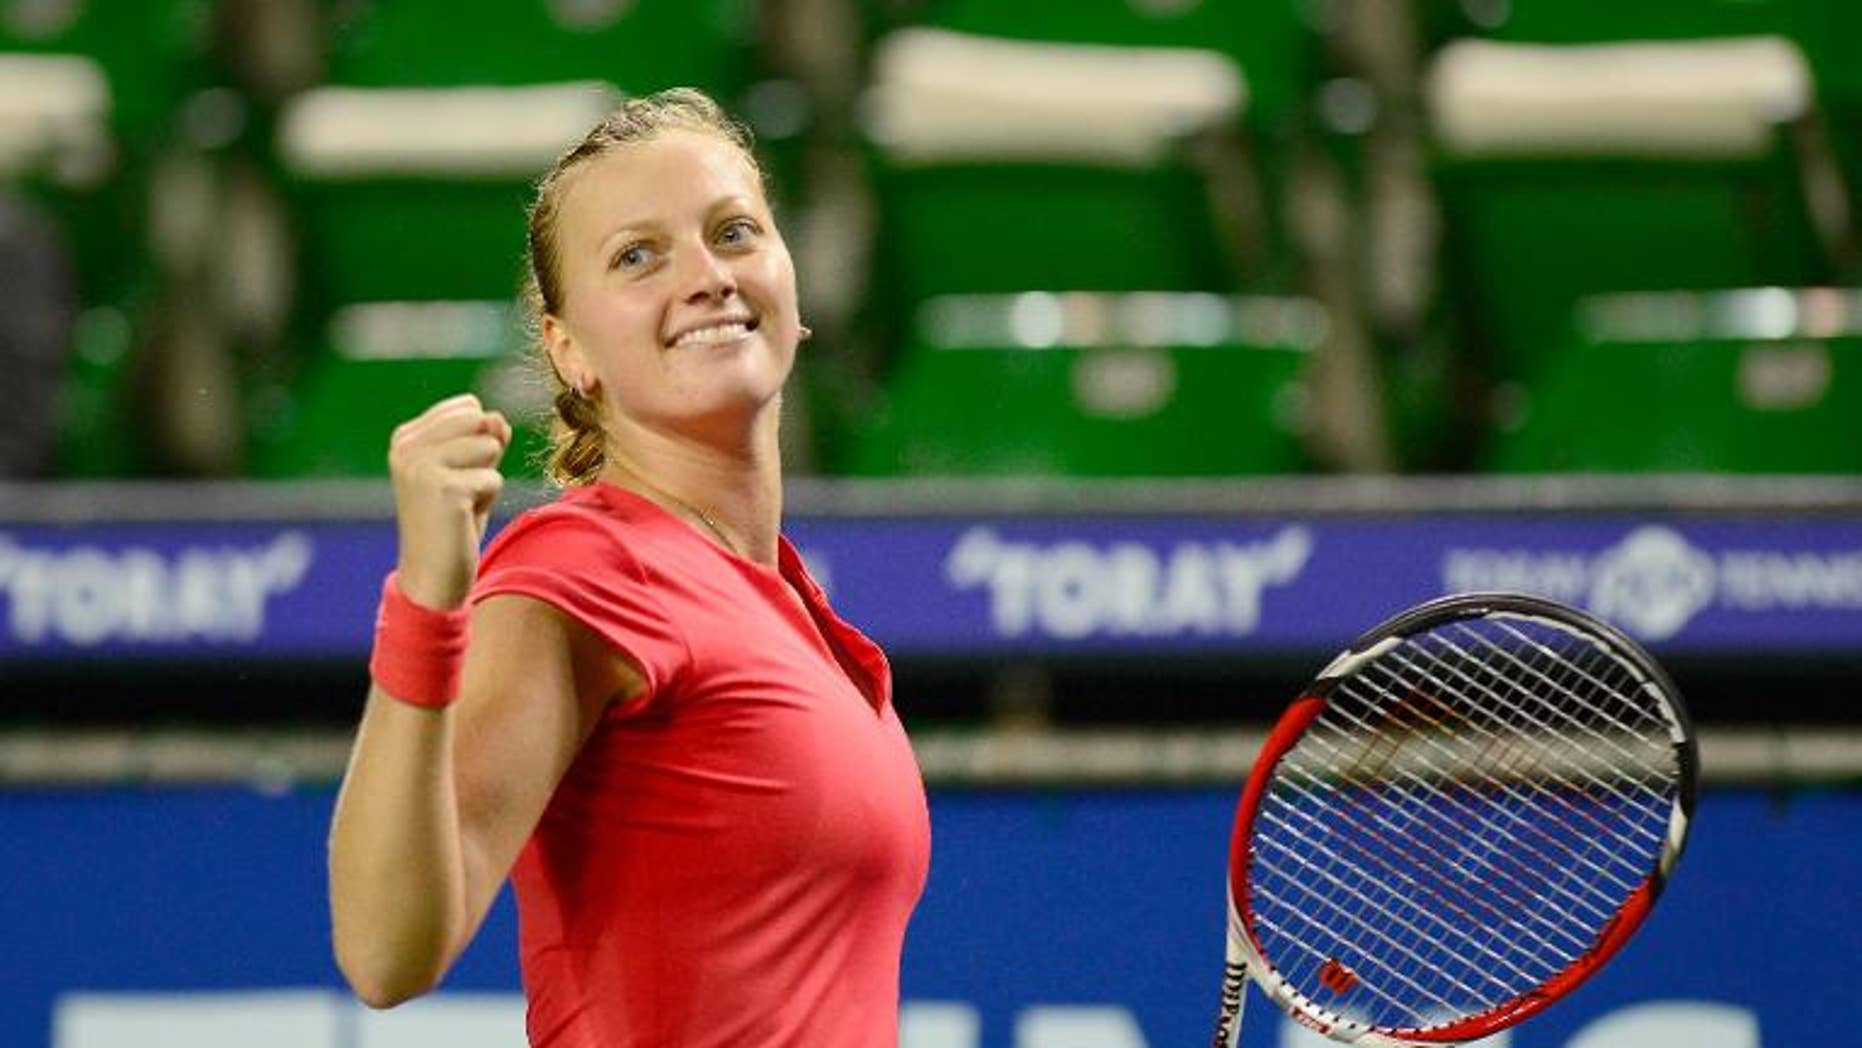 Petra Kvitova of the Czech Republic reacts after her semi-final victory against Venus Williams in Tokyo on September 27, 2013